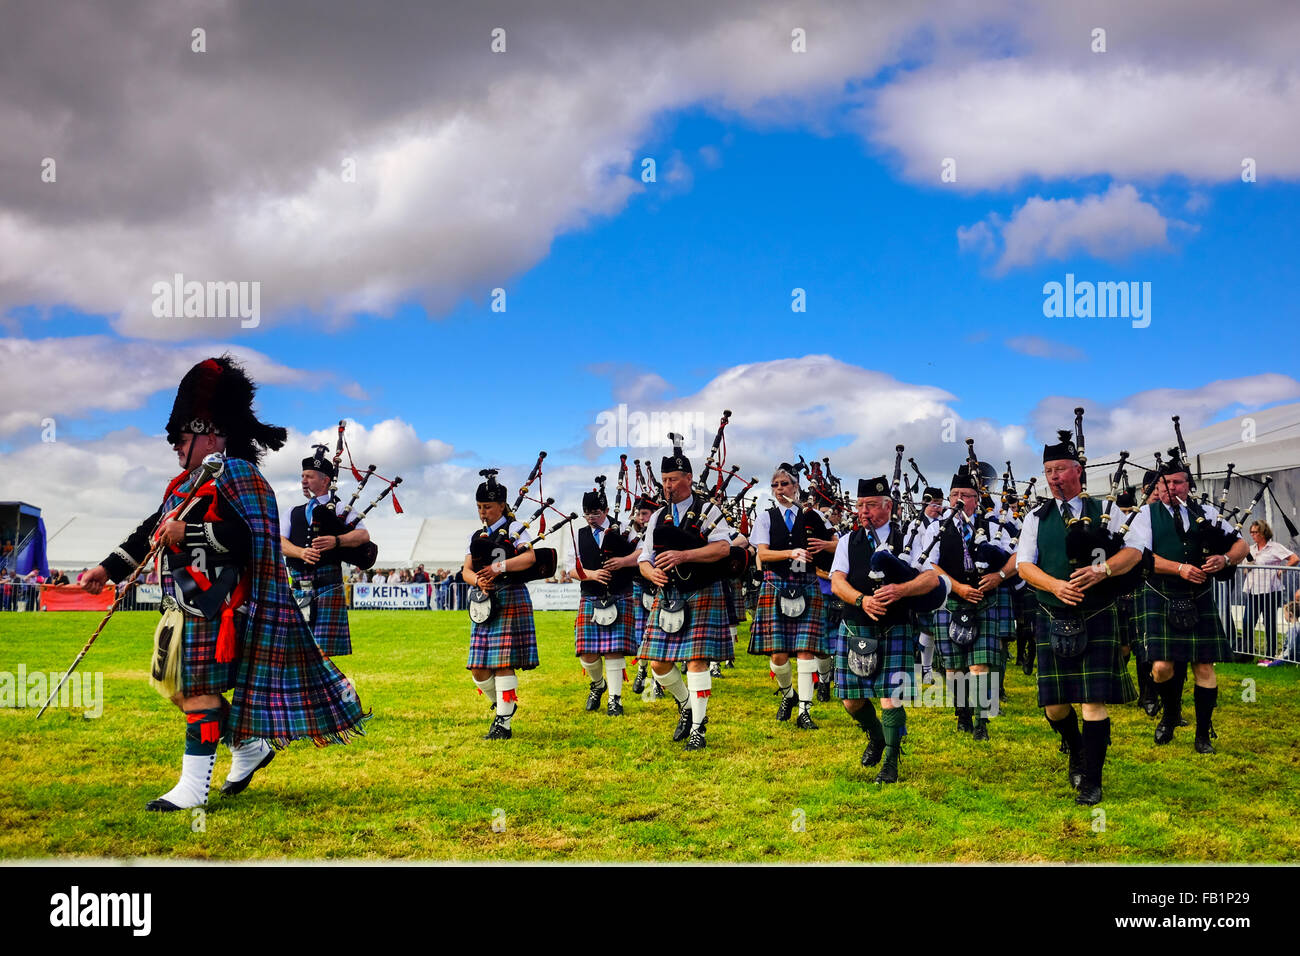 Scottish Bagpiper band marching during summer Scottish Games in Keith, Scotland, United Kingdom wearing tartan kilts. - Stock Image